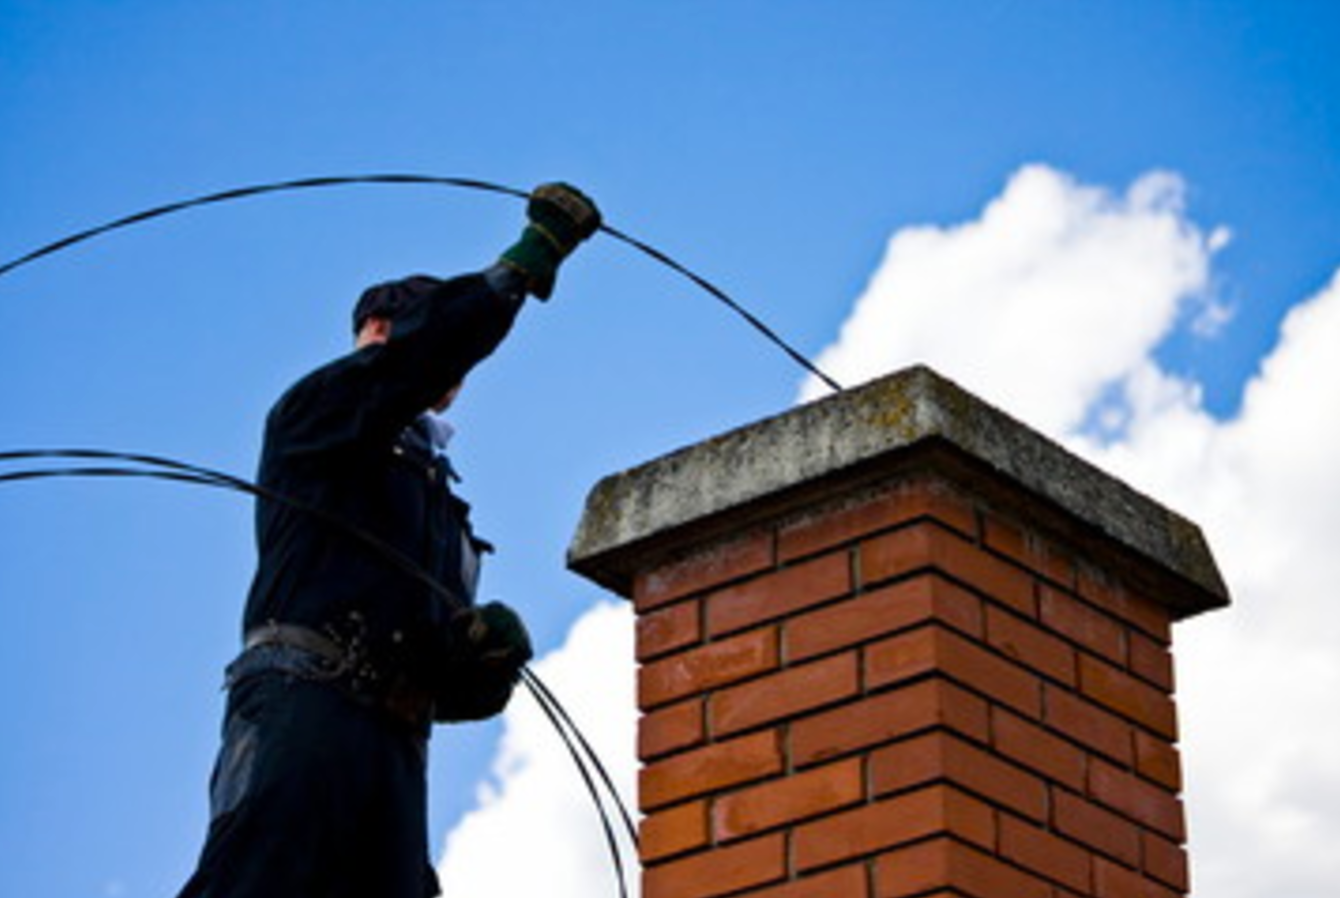 Industrial Chimney Cleaning and Inspection